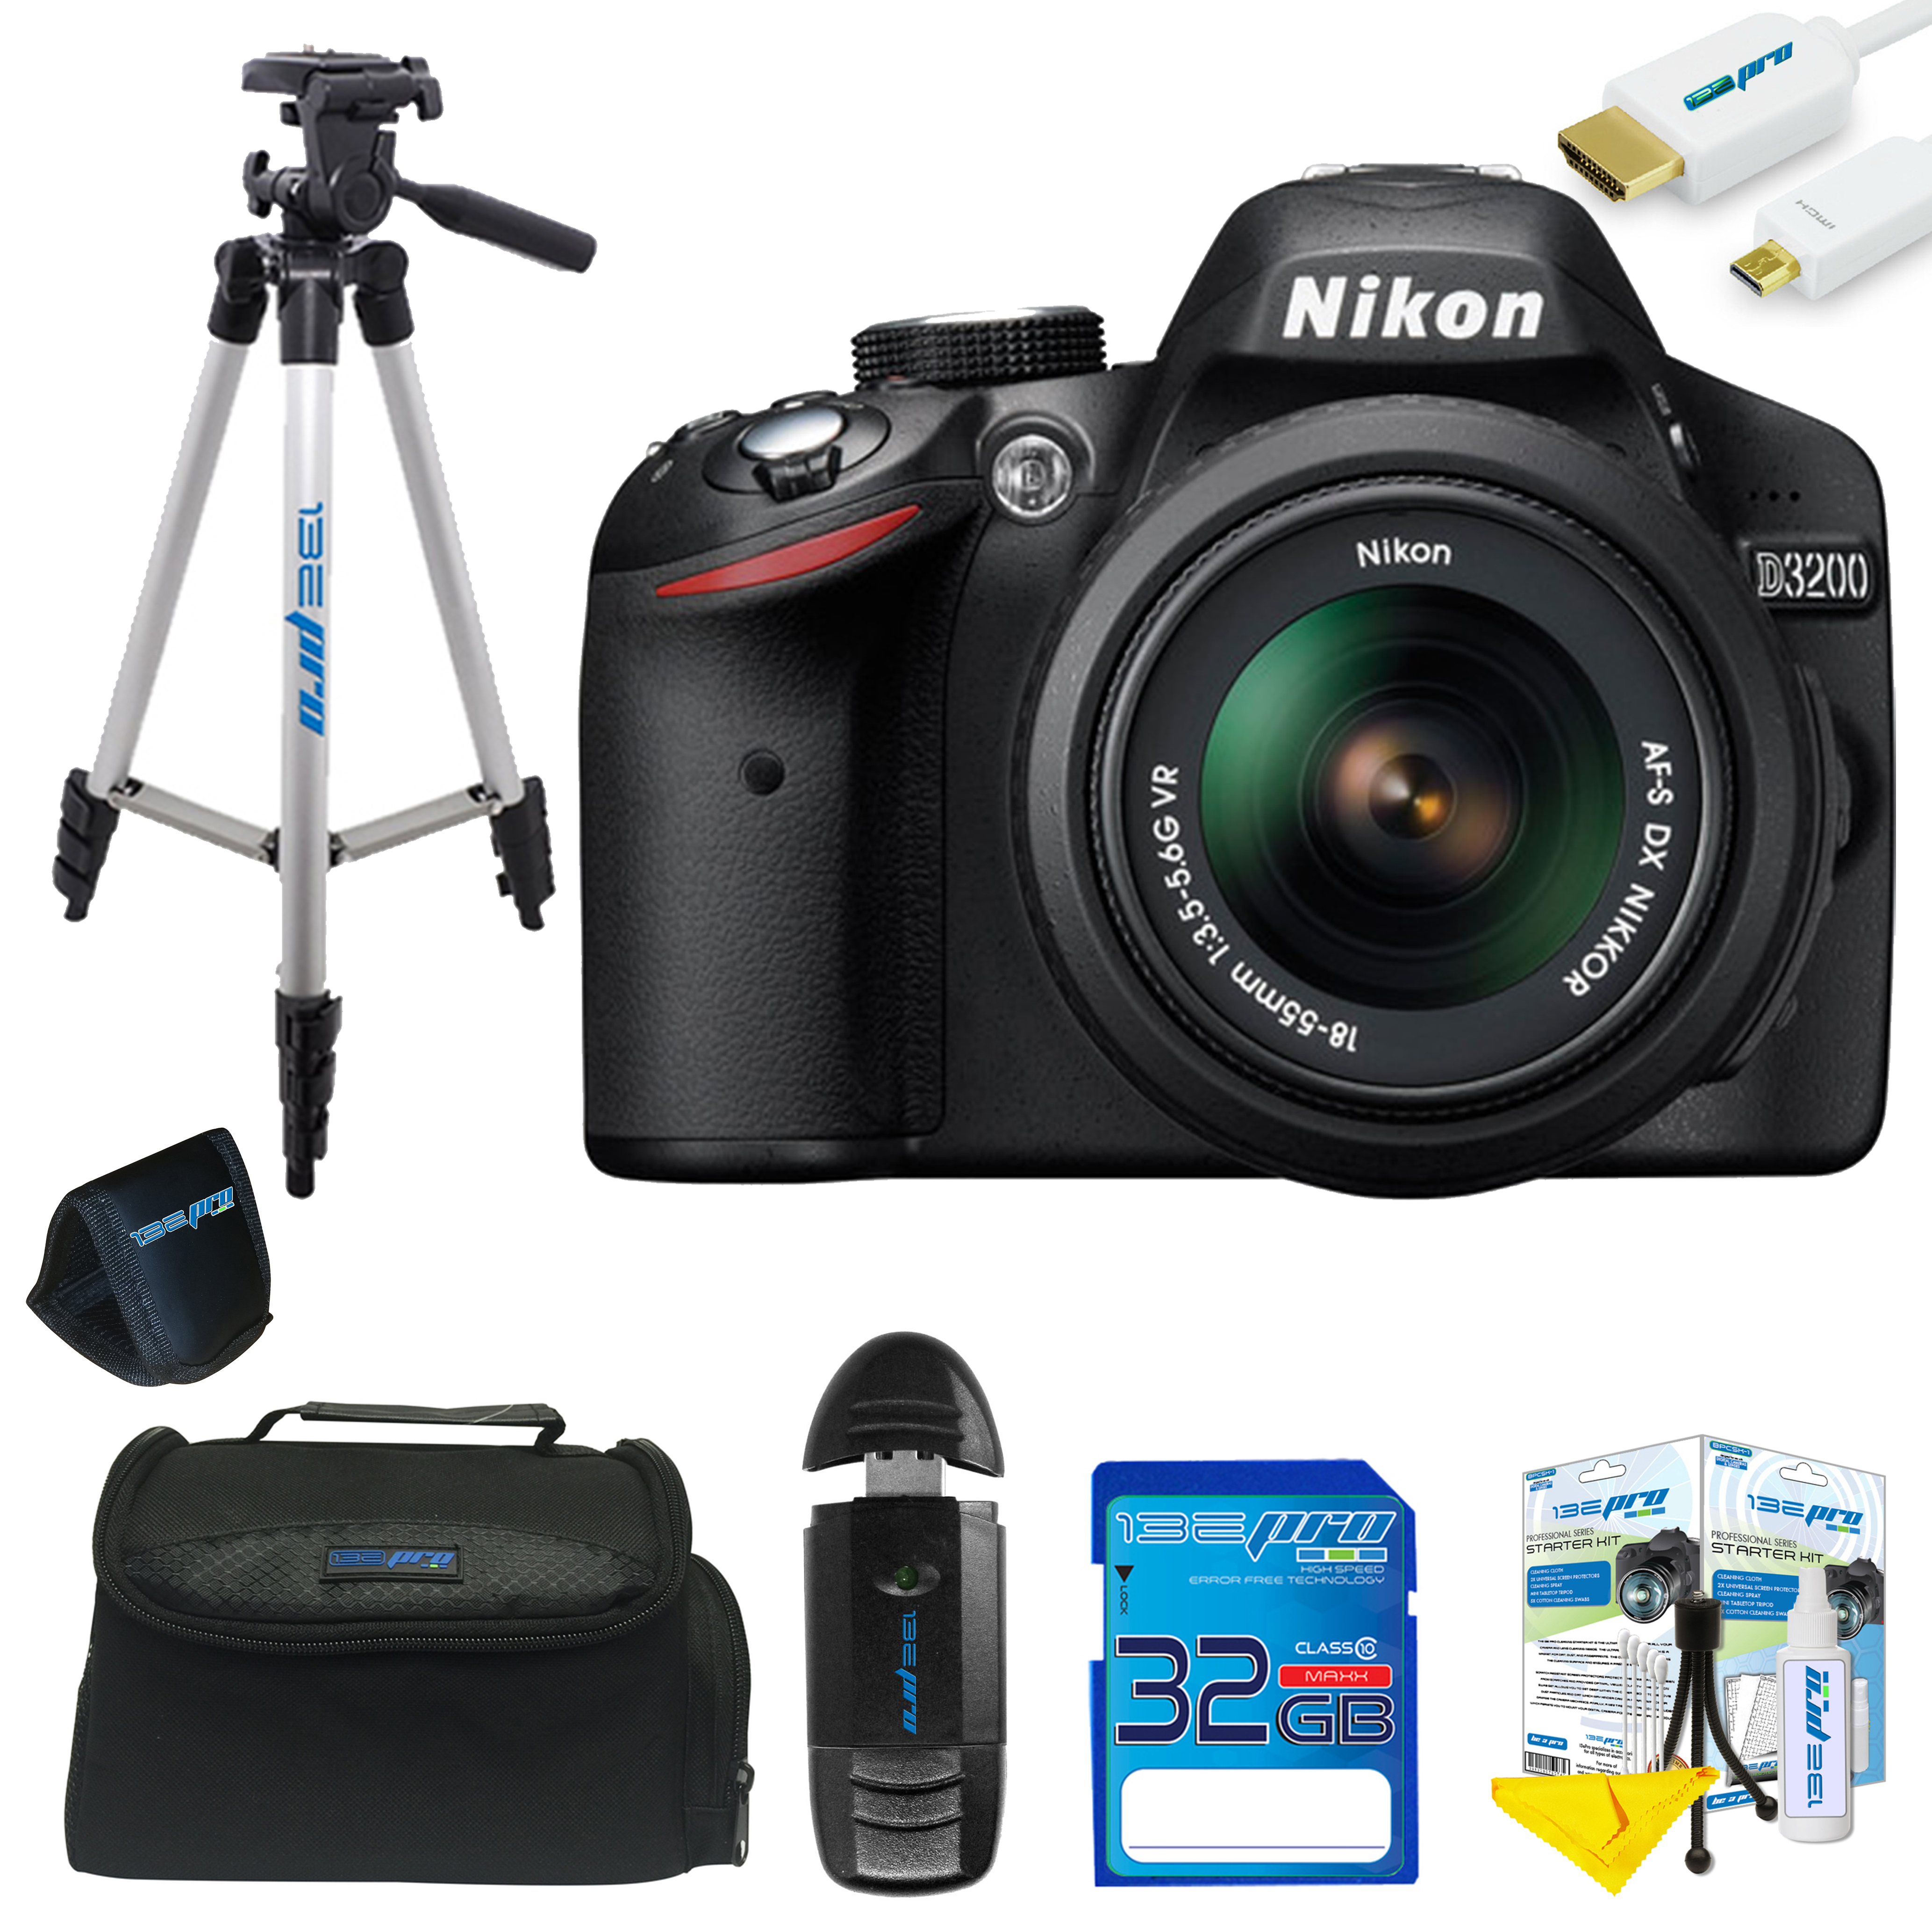 Nikon D3200 DSLR Camera with 18-55mm Lens + Pixi Basic Kit